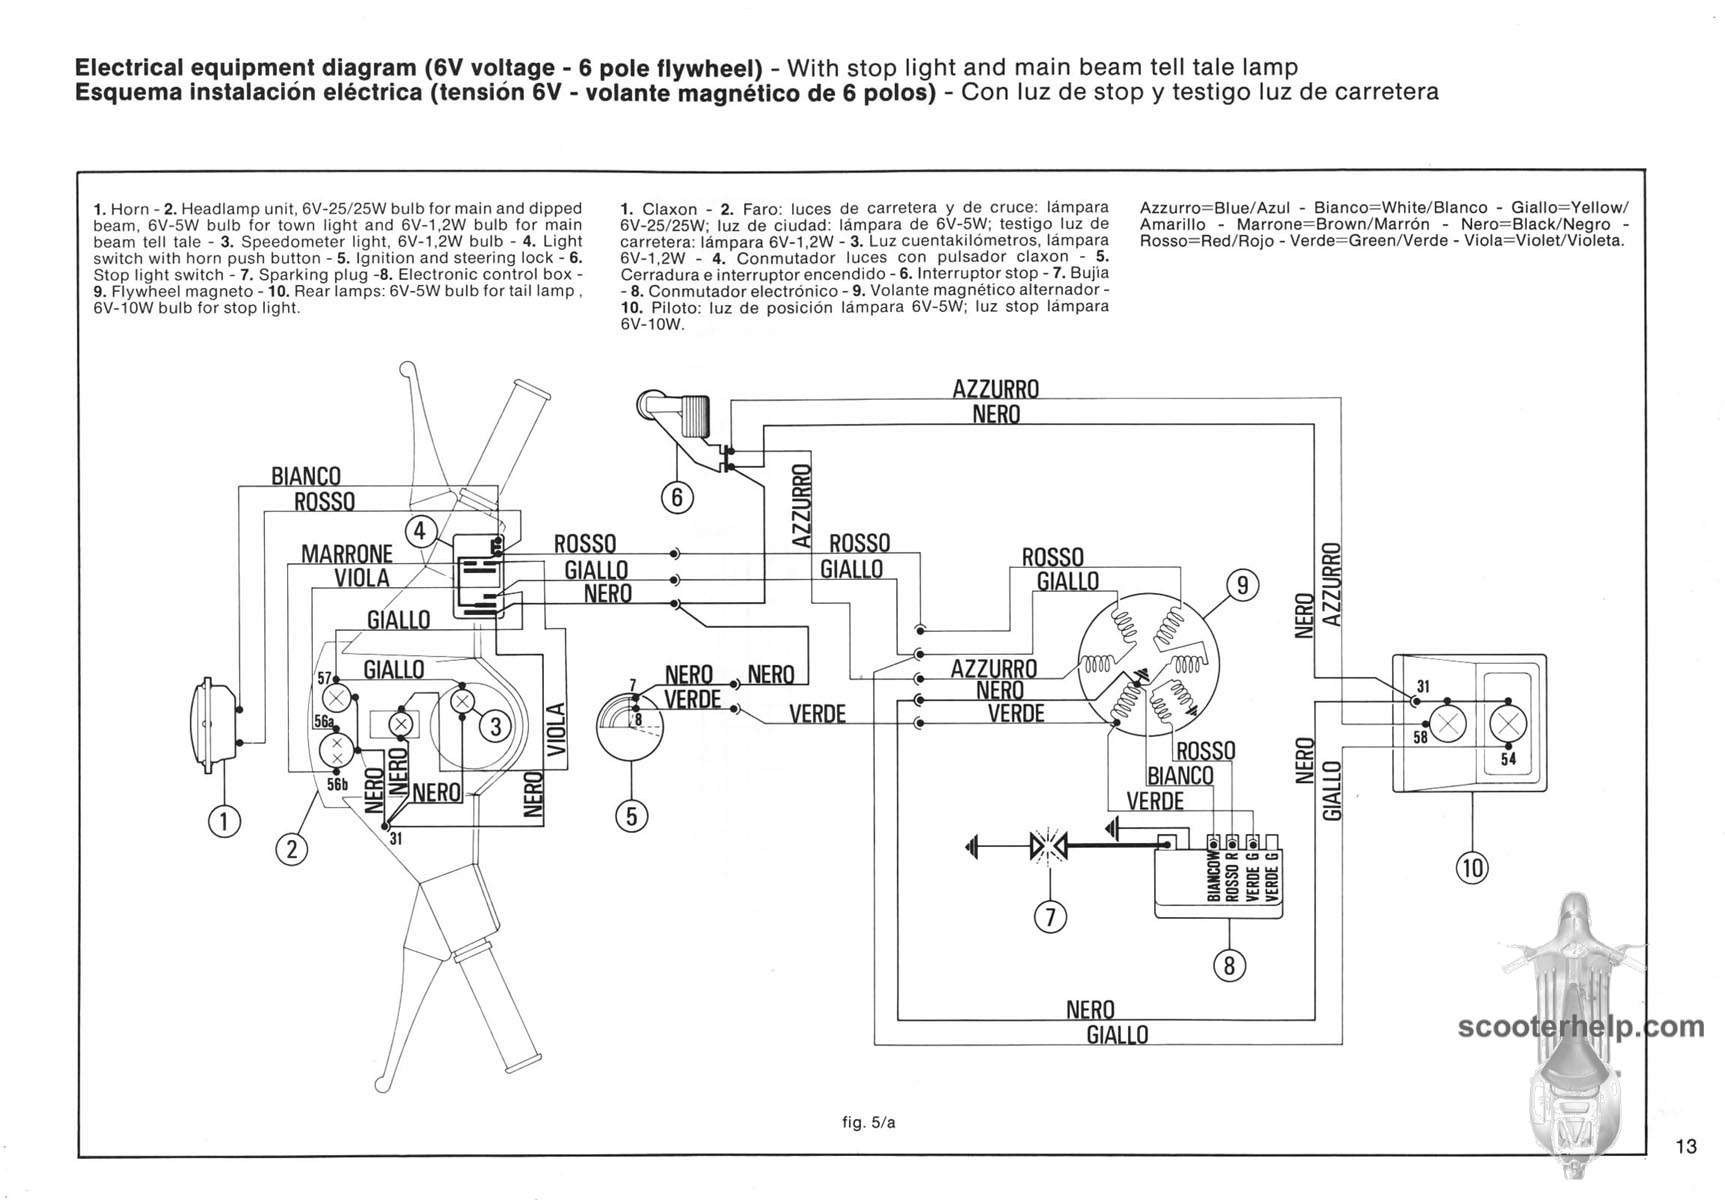 hight resolution of vespa lx 150 wiring diagram wiring diagram data schema vespa lx 150 wiring diagram wiring library